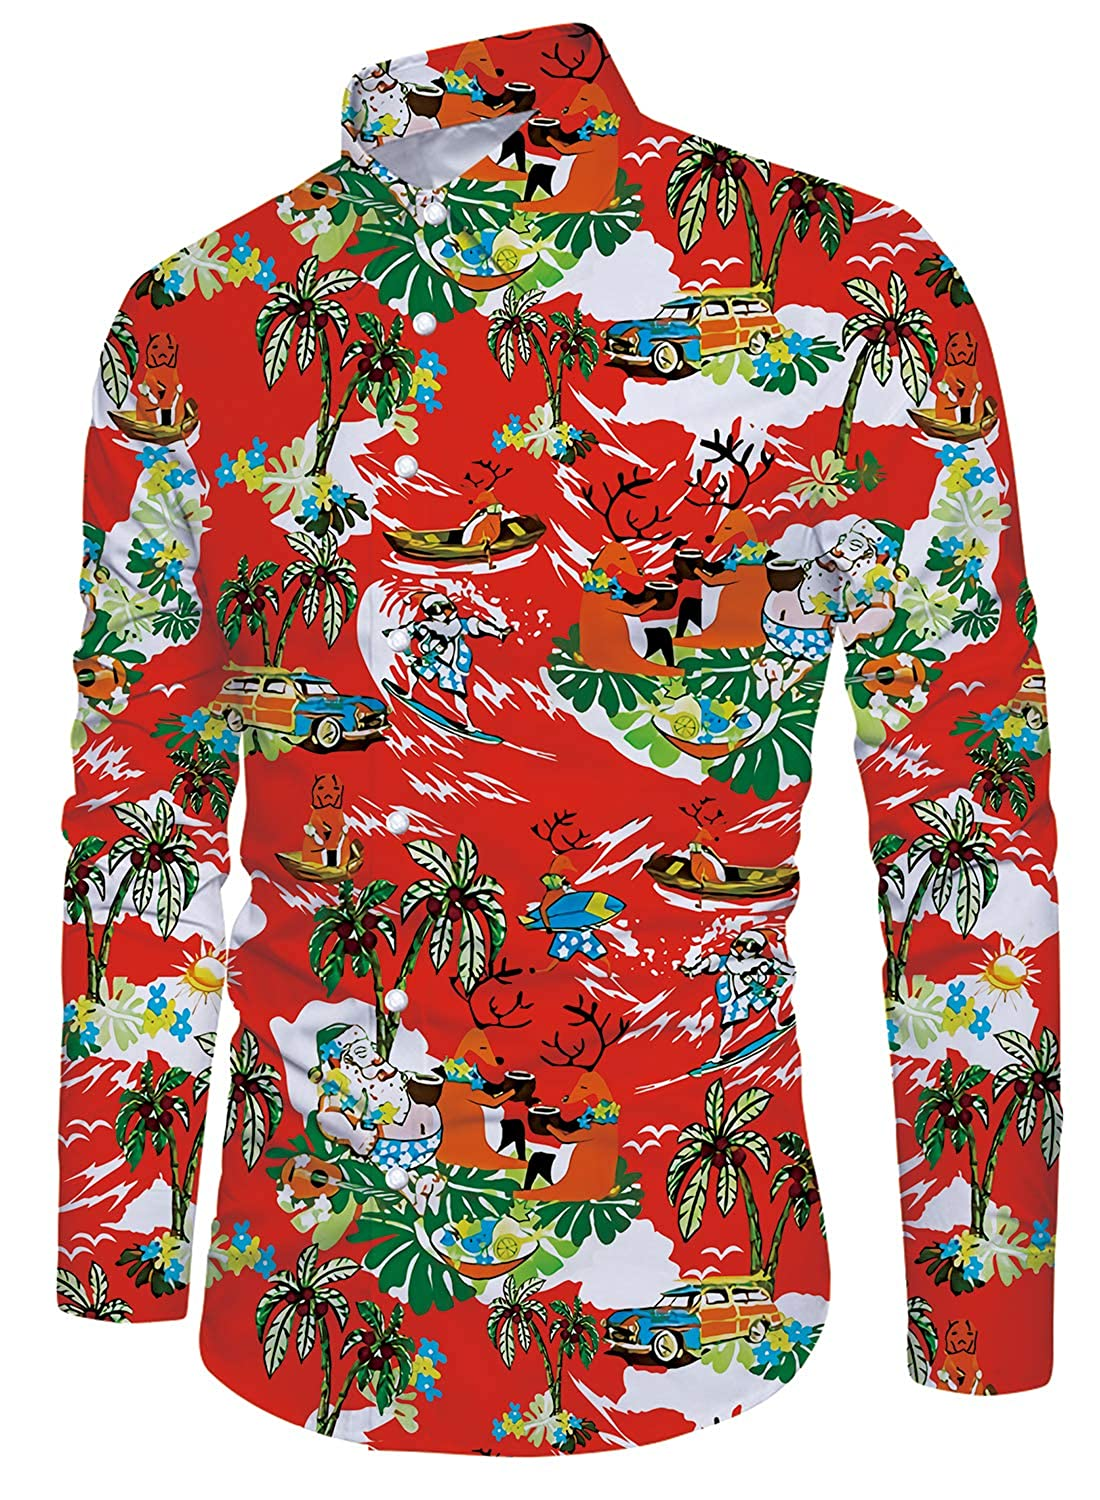 New Fifties Dresses | 50s Inspired Dresses Funnycokid Mens Shirt Printed Long Sleeve Button Down Holiday Style Hawaiian Shirts £24.99 AT vintagedancer.com